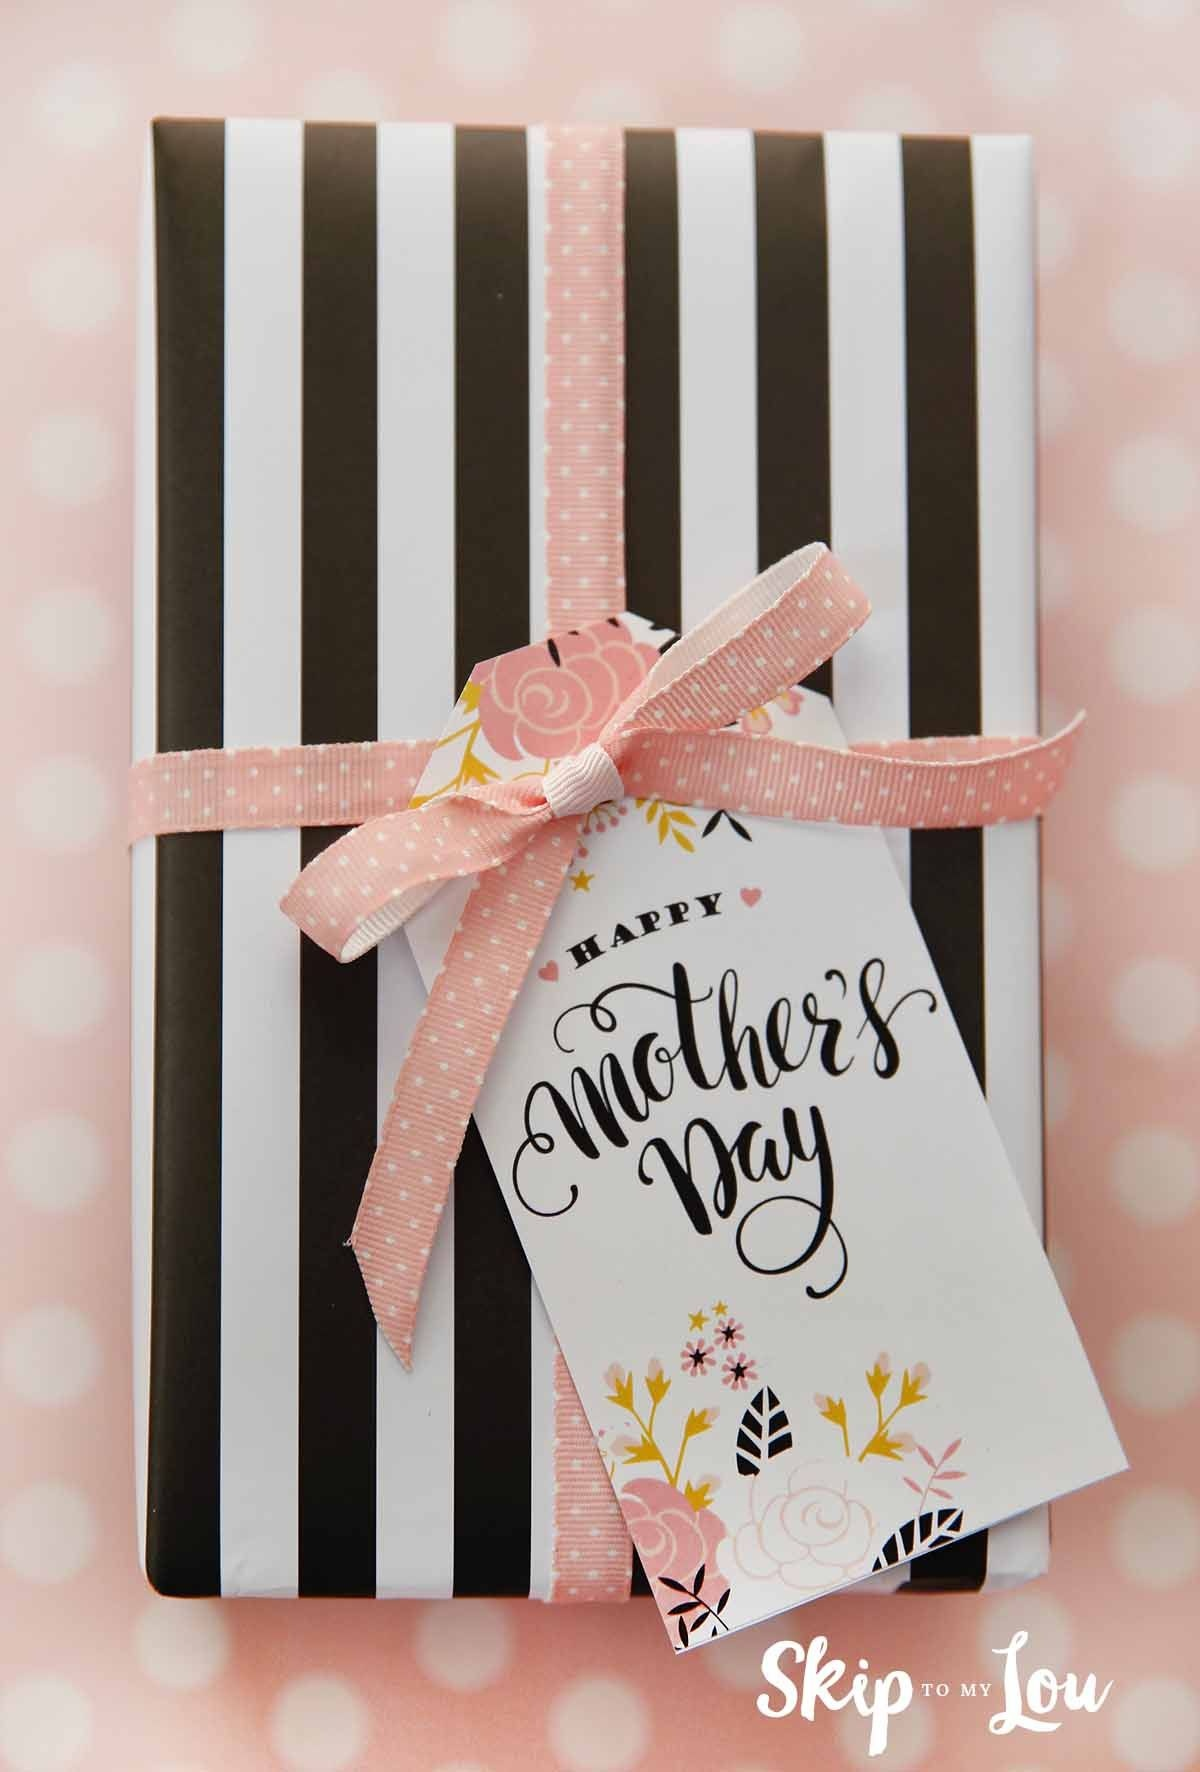 6 Beautiful Free Printable Mothers Day Tags For Your Gifts - Free Printable Mothers Day Gifts